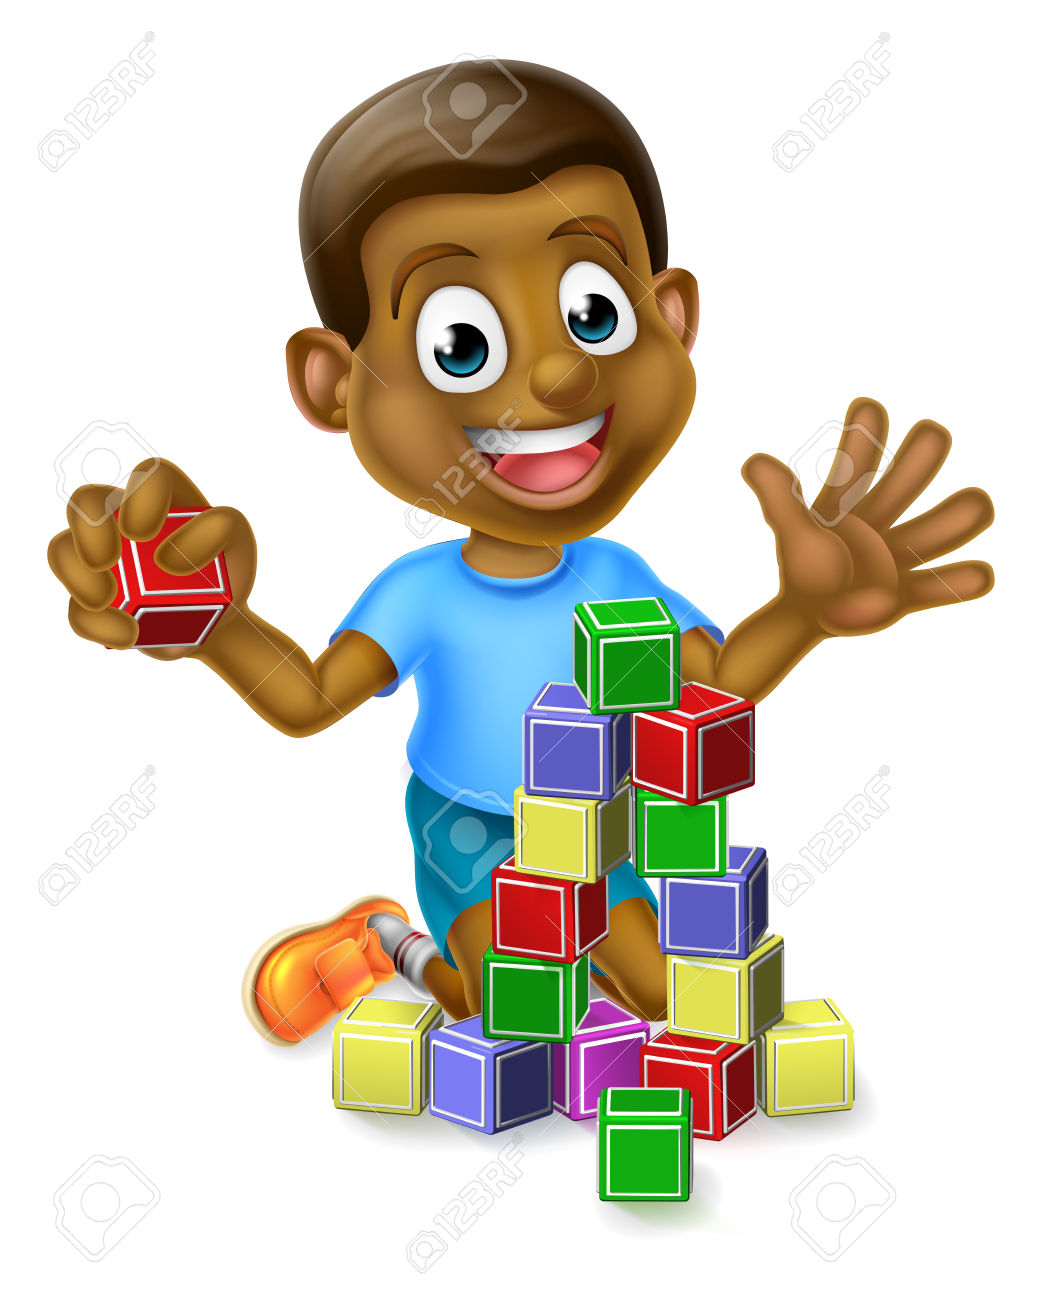 Child building with blocks clipart picture freeuse download A Happy Cartoon Black Boy Child Kid Playing With Building Or ... picture freeuse download